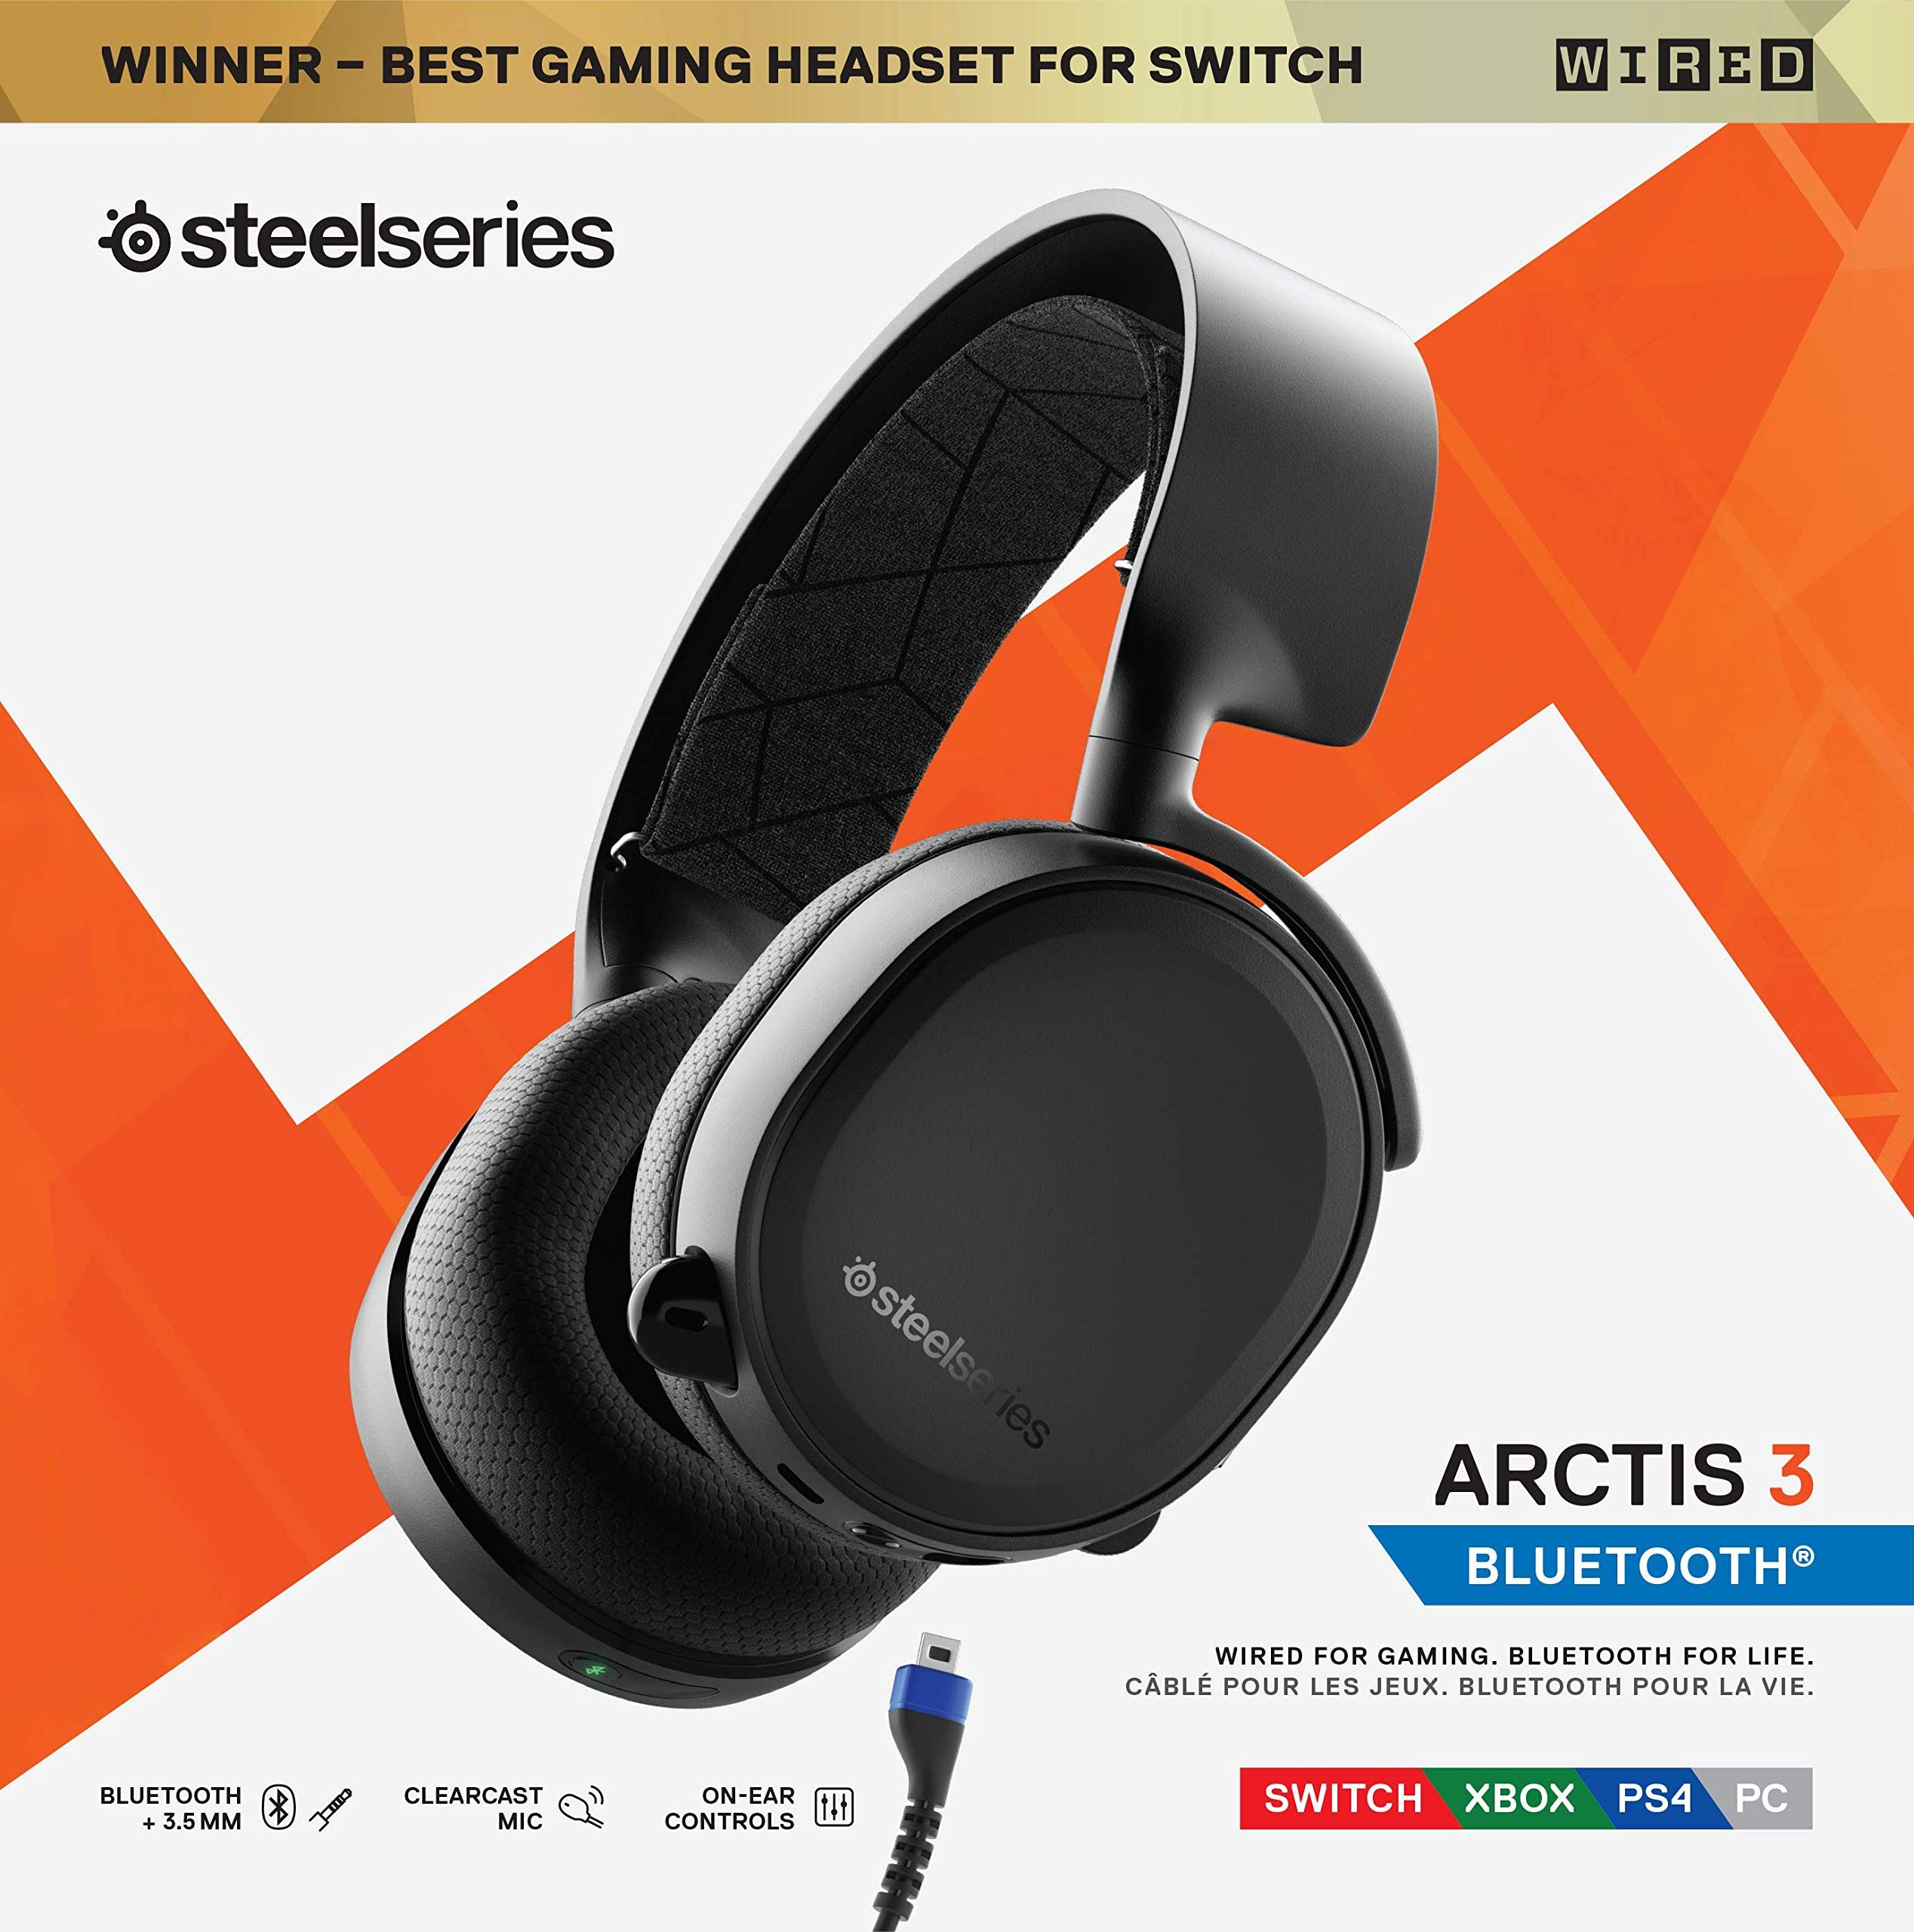 Steelseries Arctis 3 Bluetooth 2019 Edition Wired And Wireless Gaming Headset For Nintendo Switch Pc Playsta Wireless Gaming Headset Headset Gaming Headset